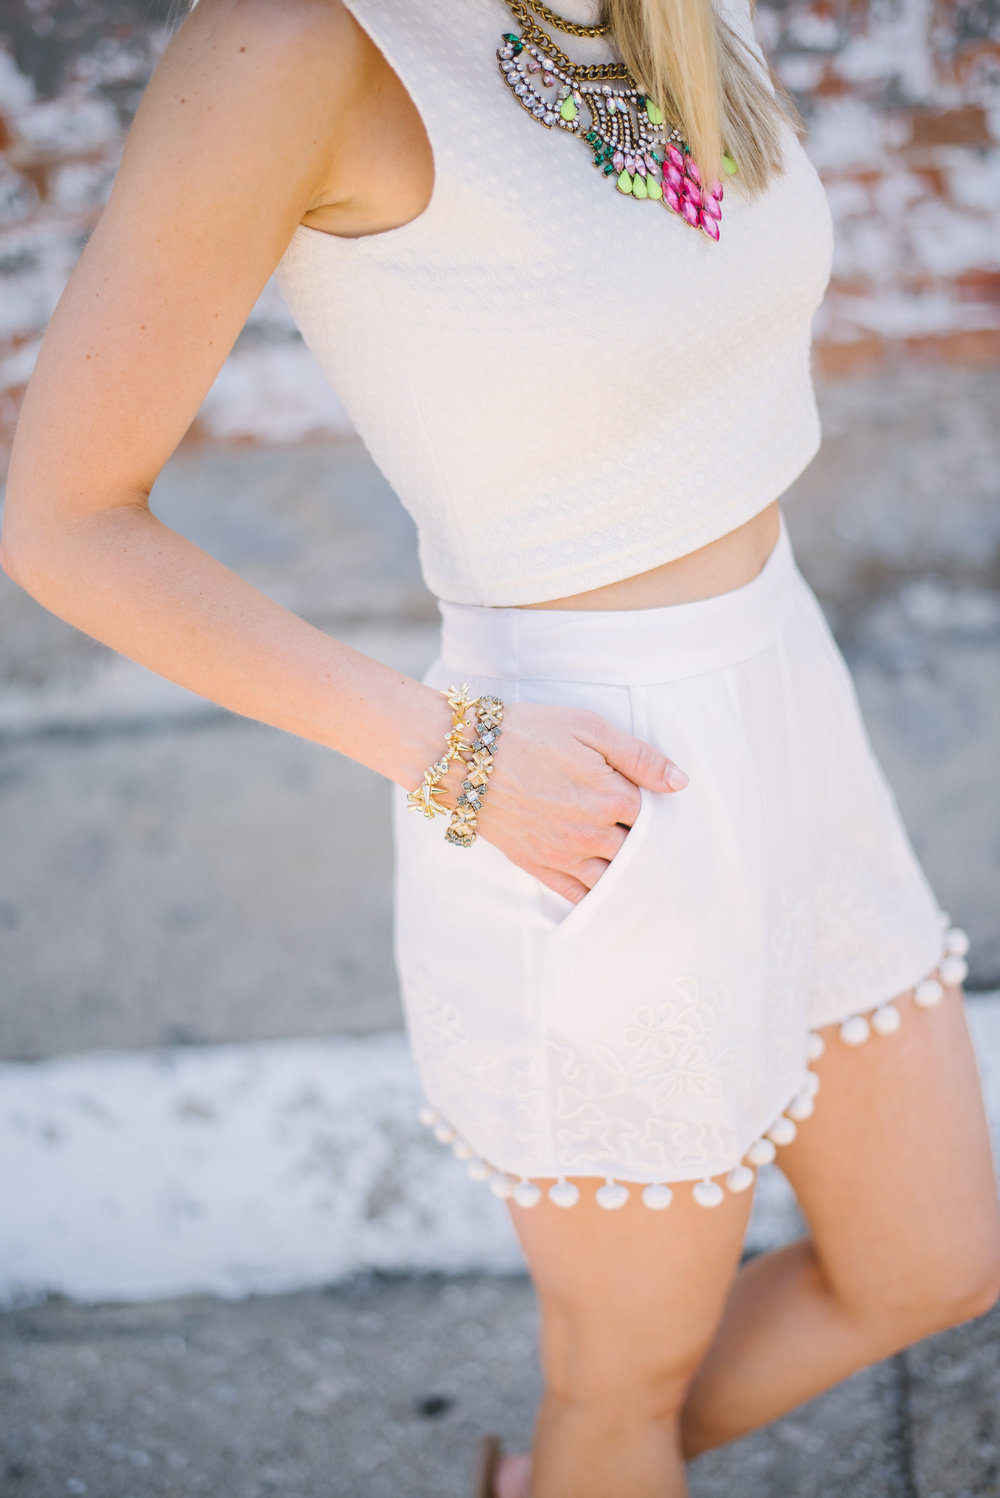 Pom Pom Shorts & Crop Top 4